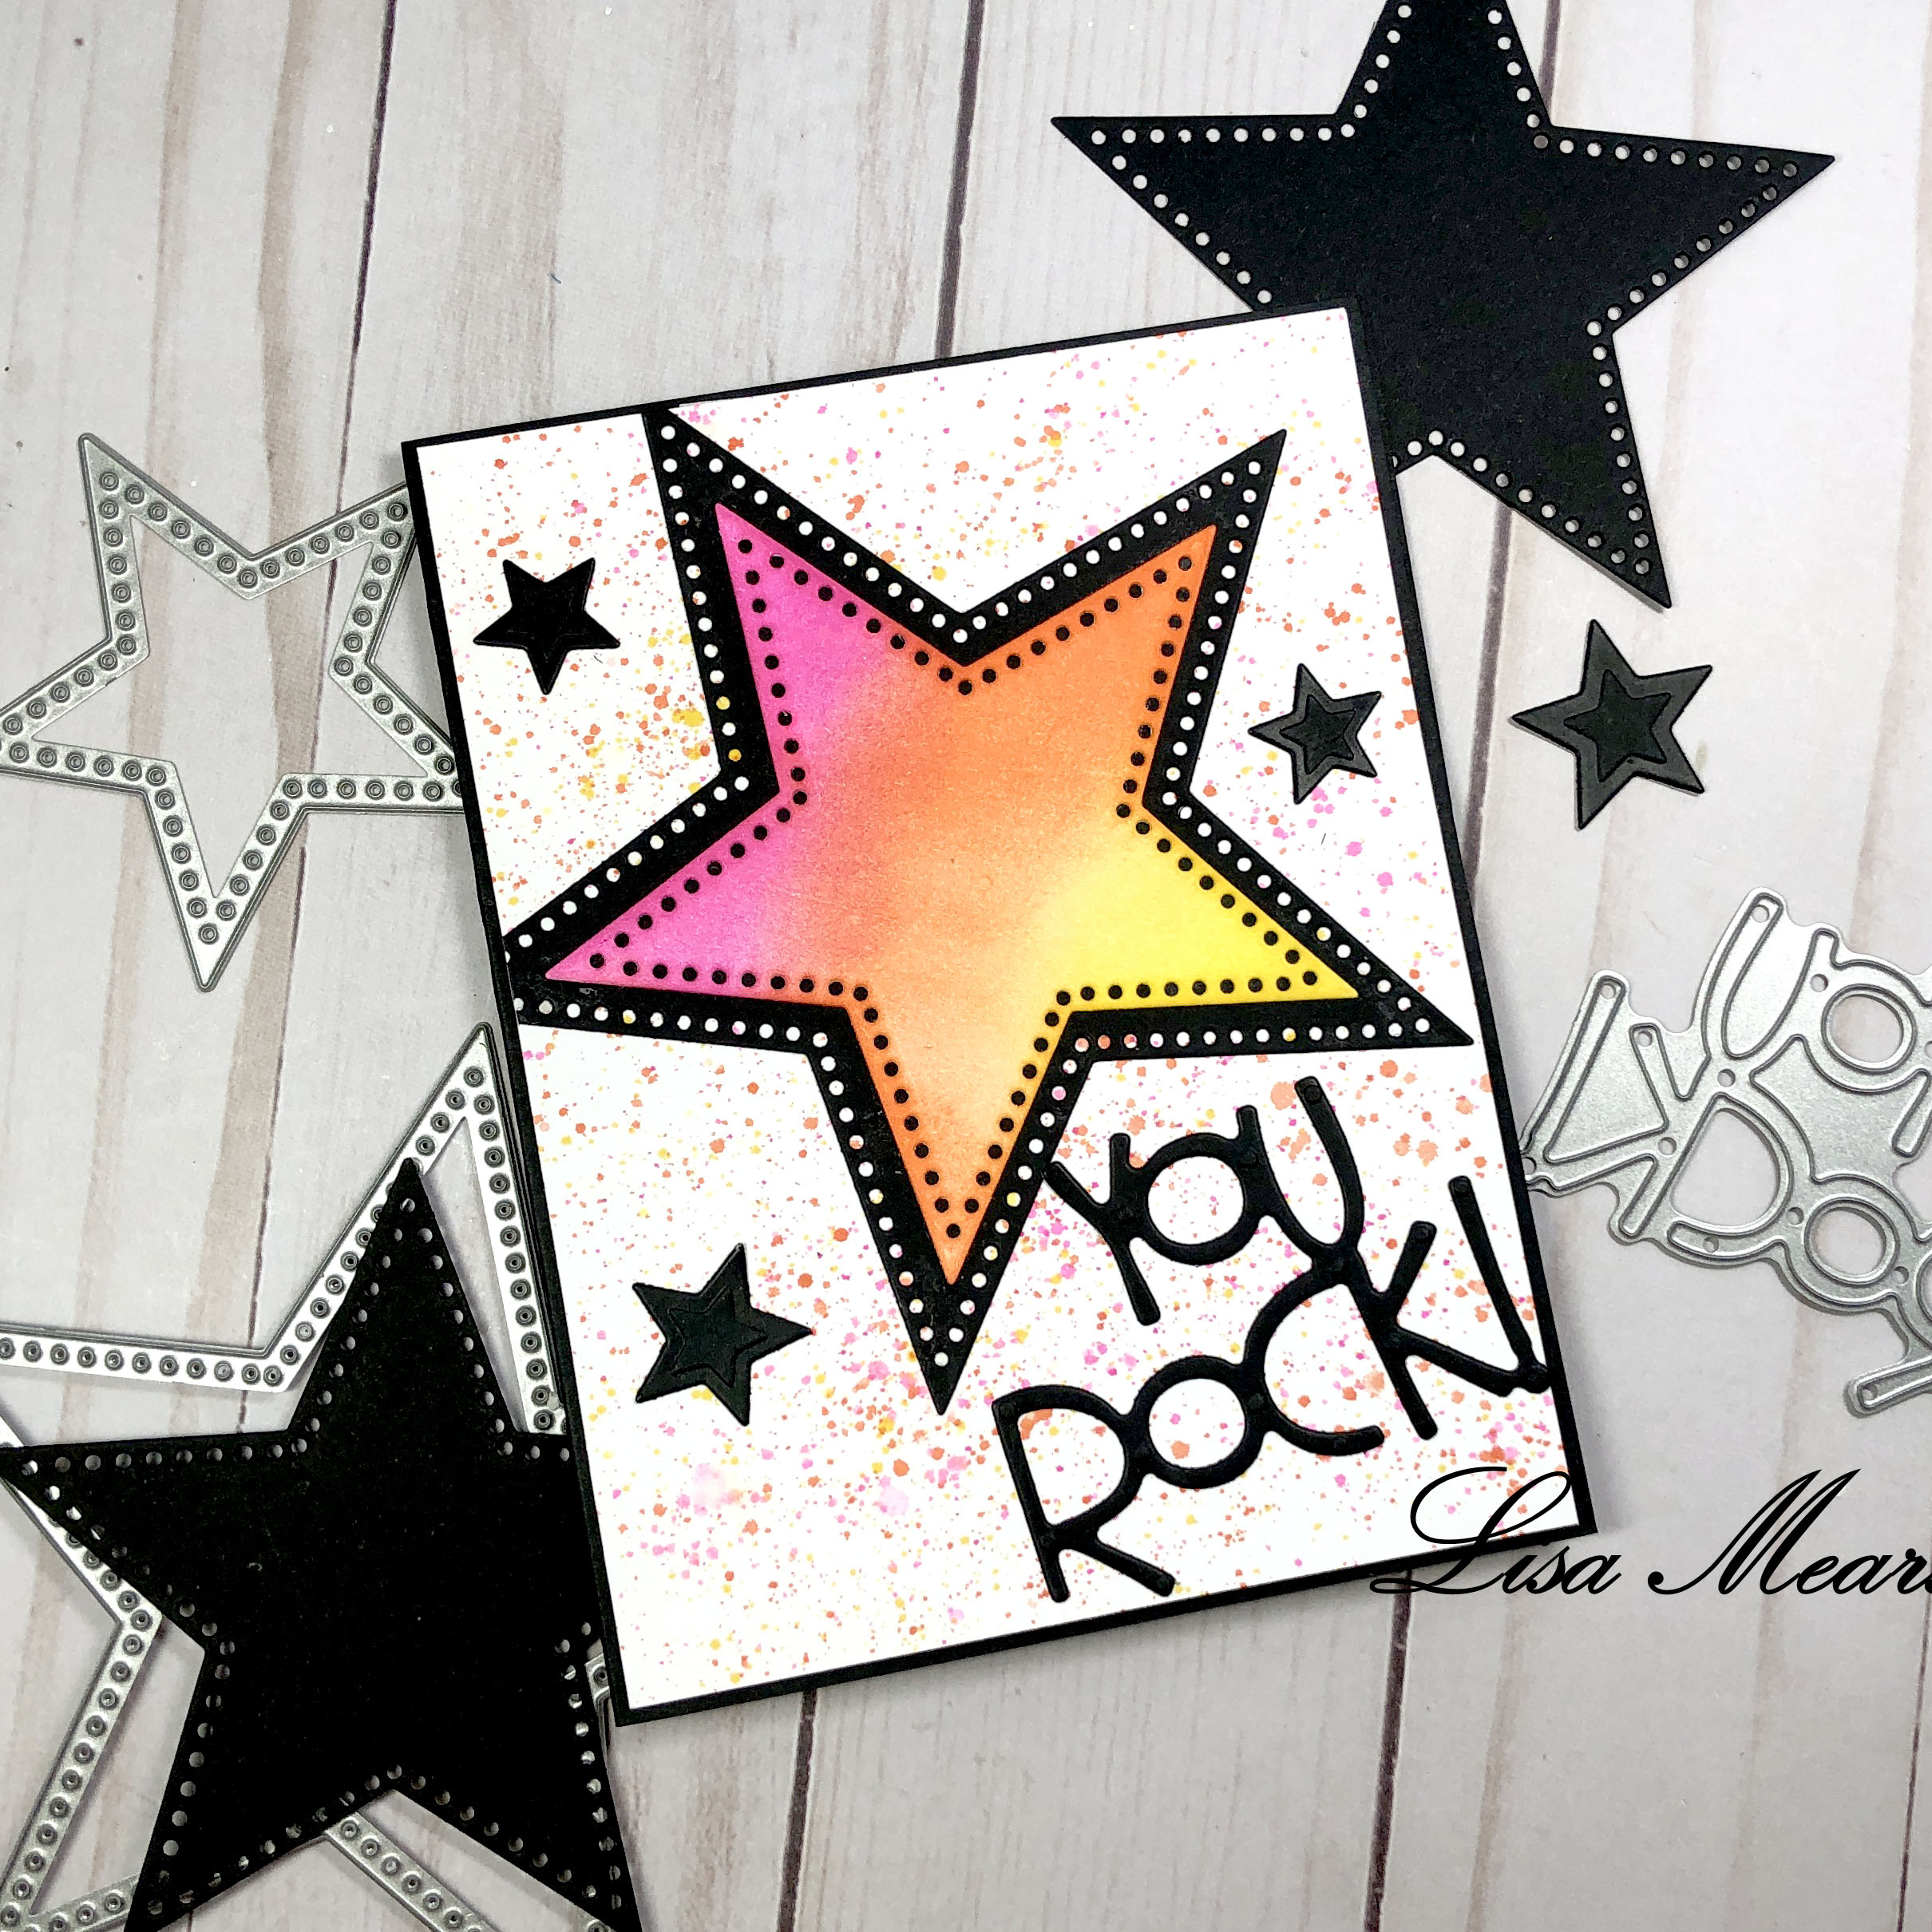 You Rock Card with splatter background